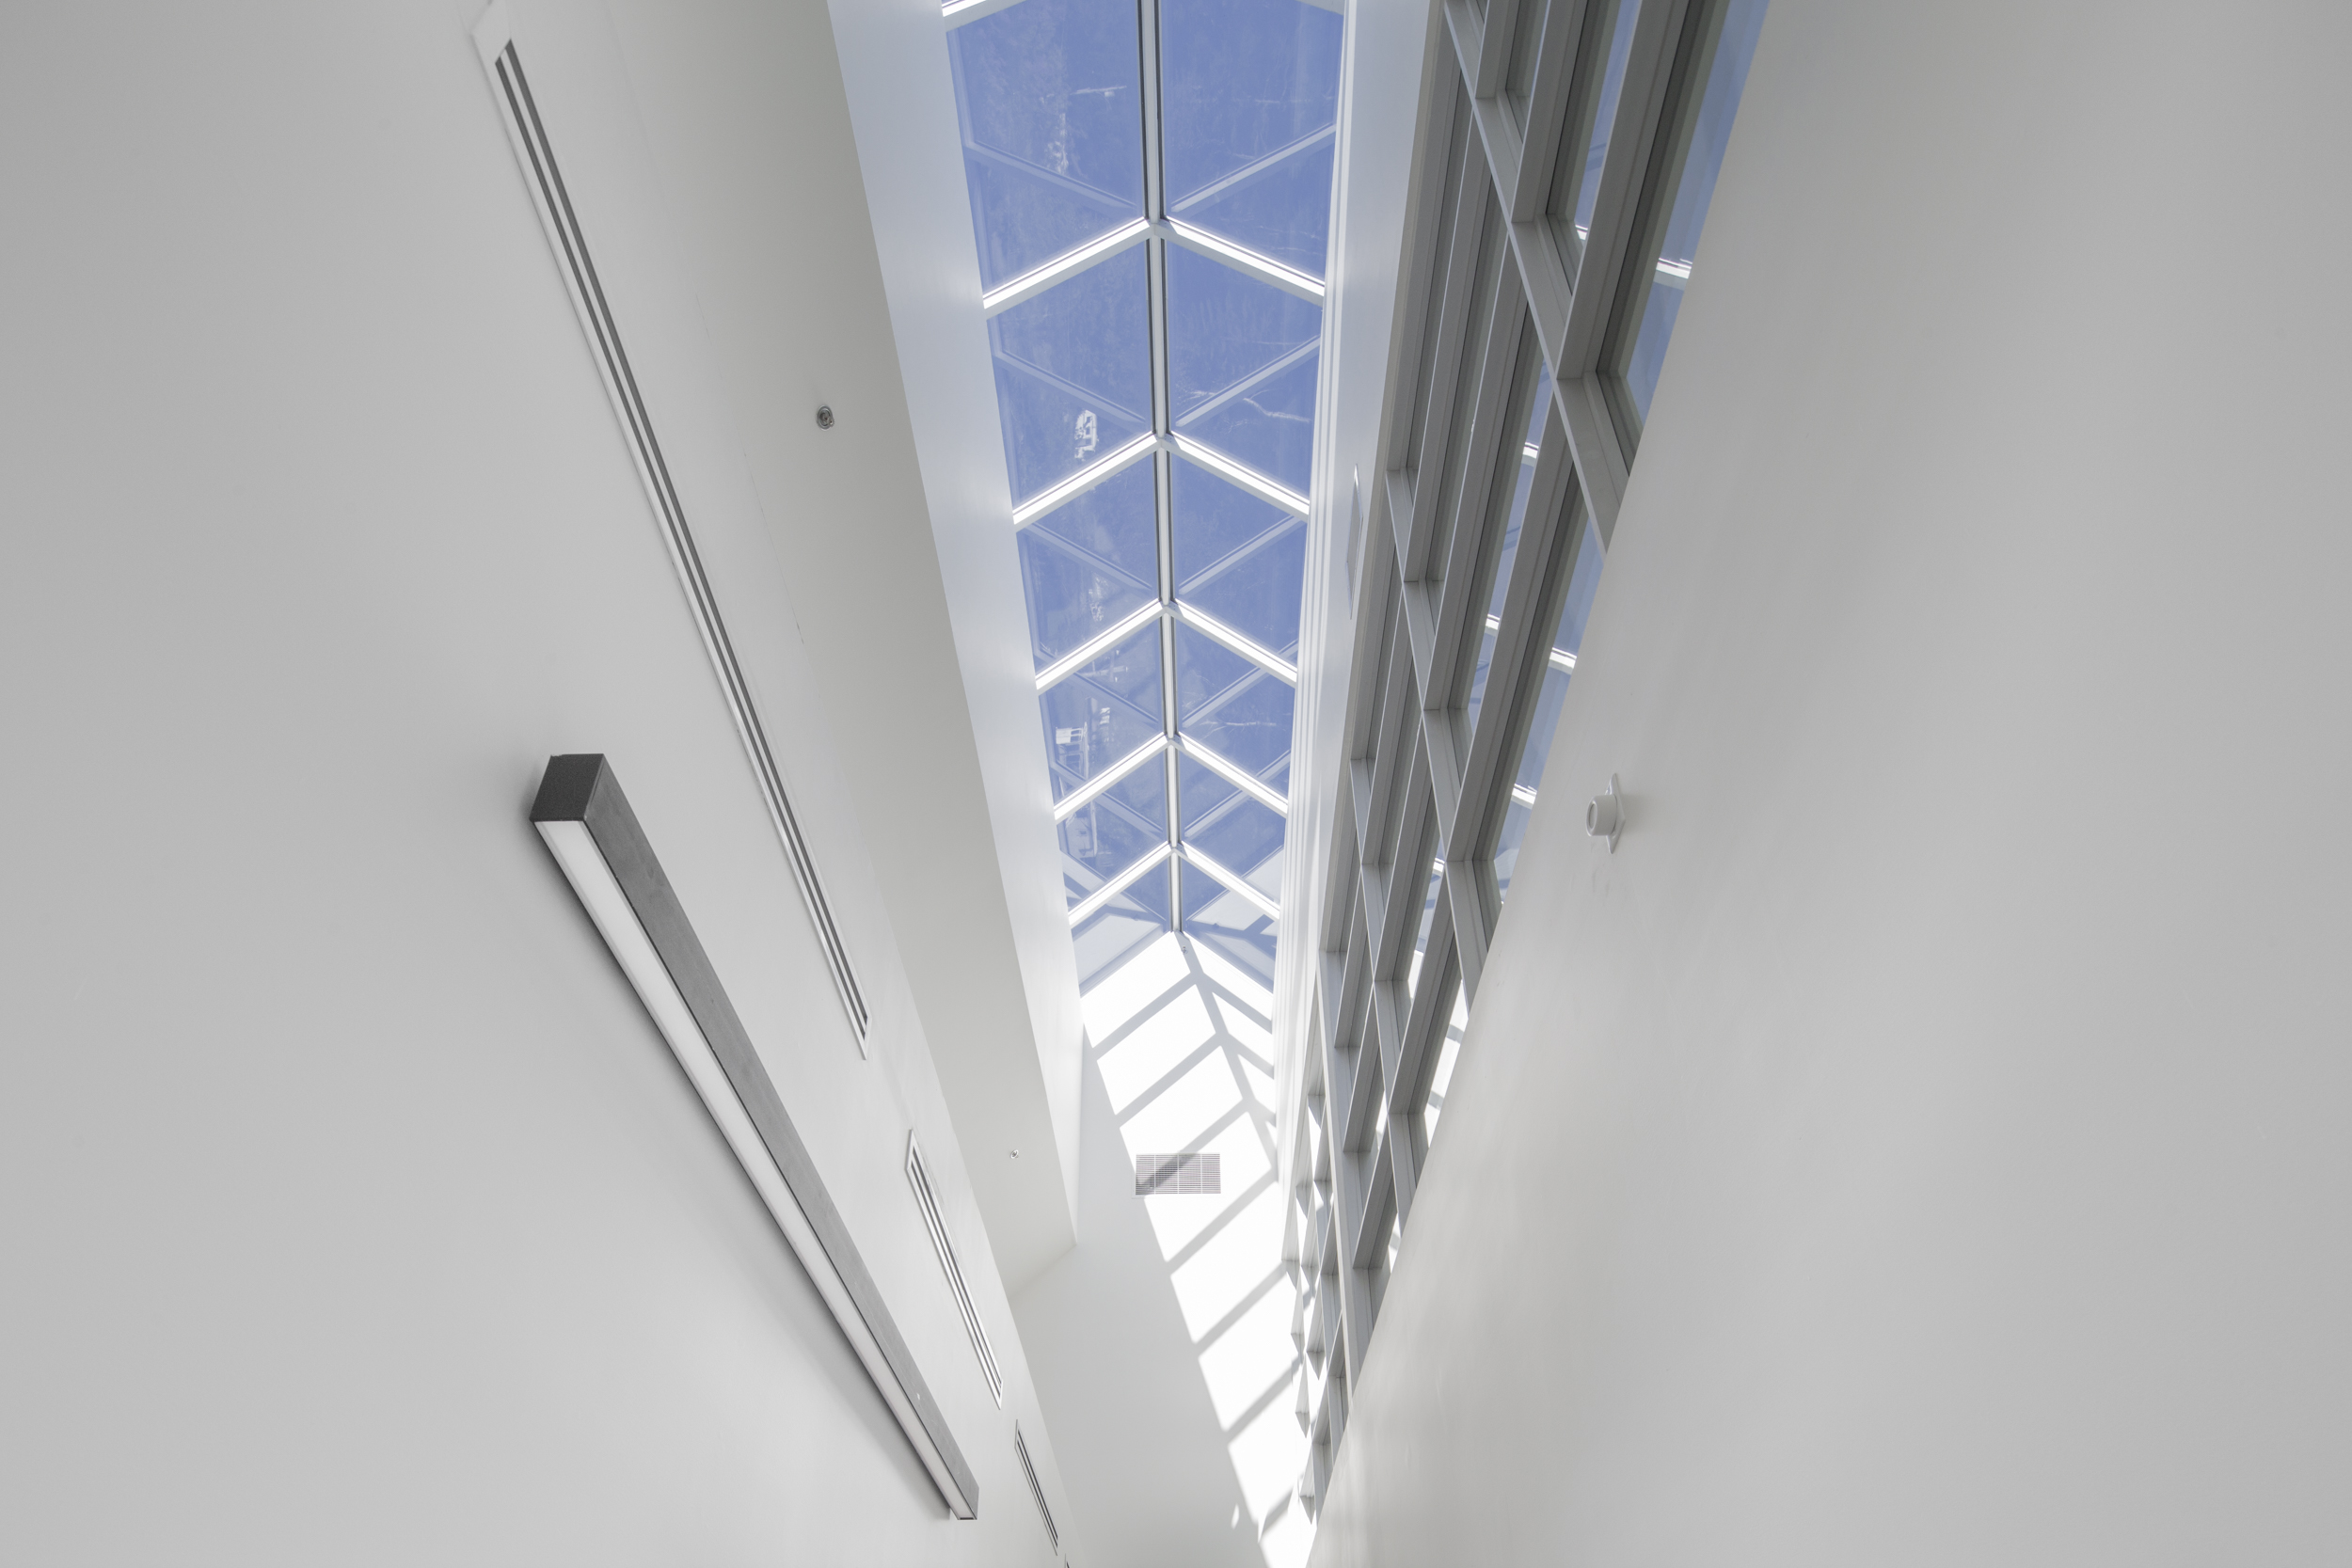 A skylight along the top edge of the gable roof illuminates the reception area and administrative functions of the building.